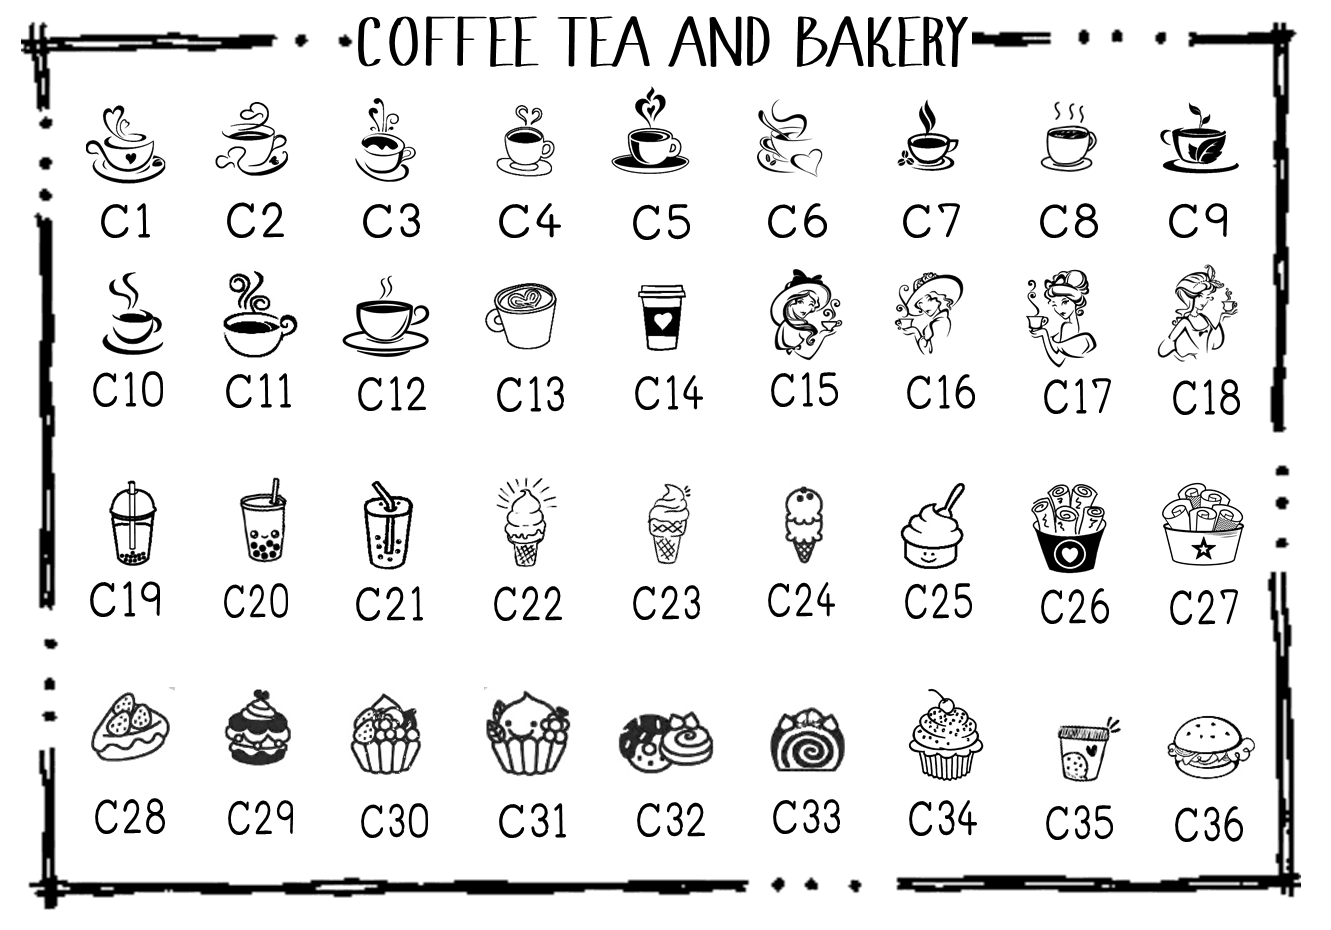 coffee tea and bakery